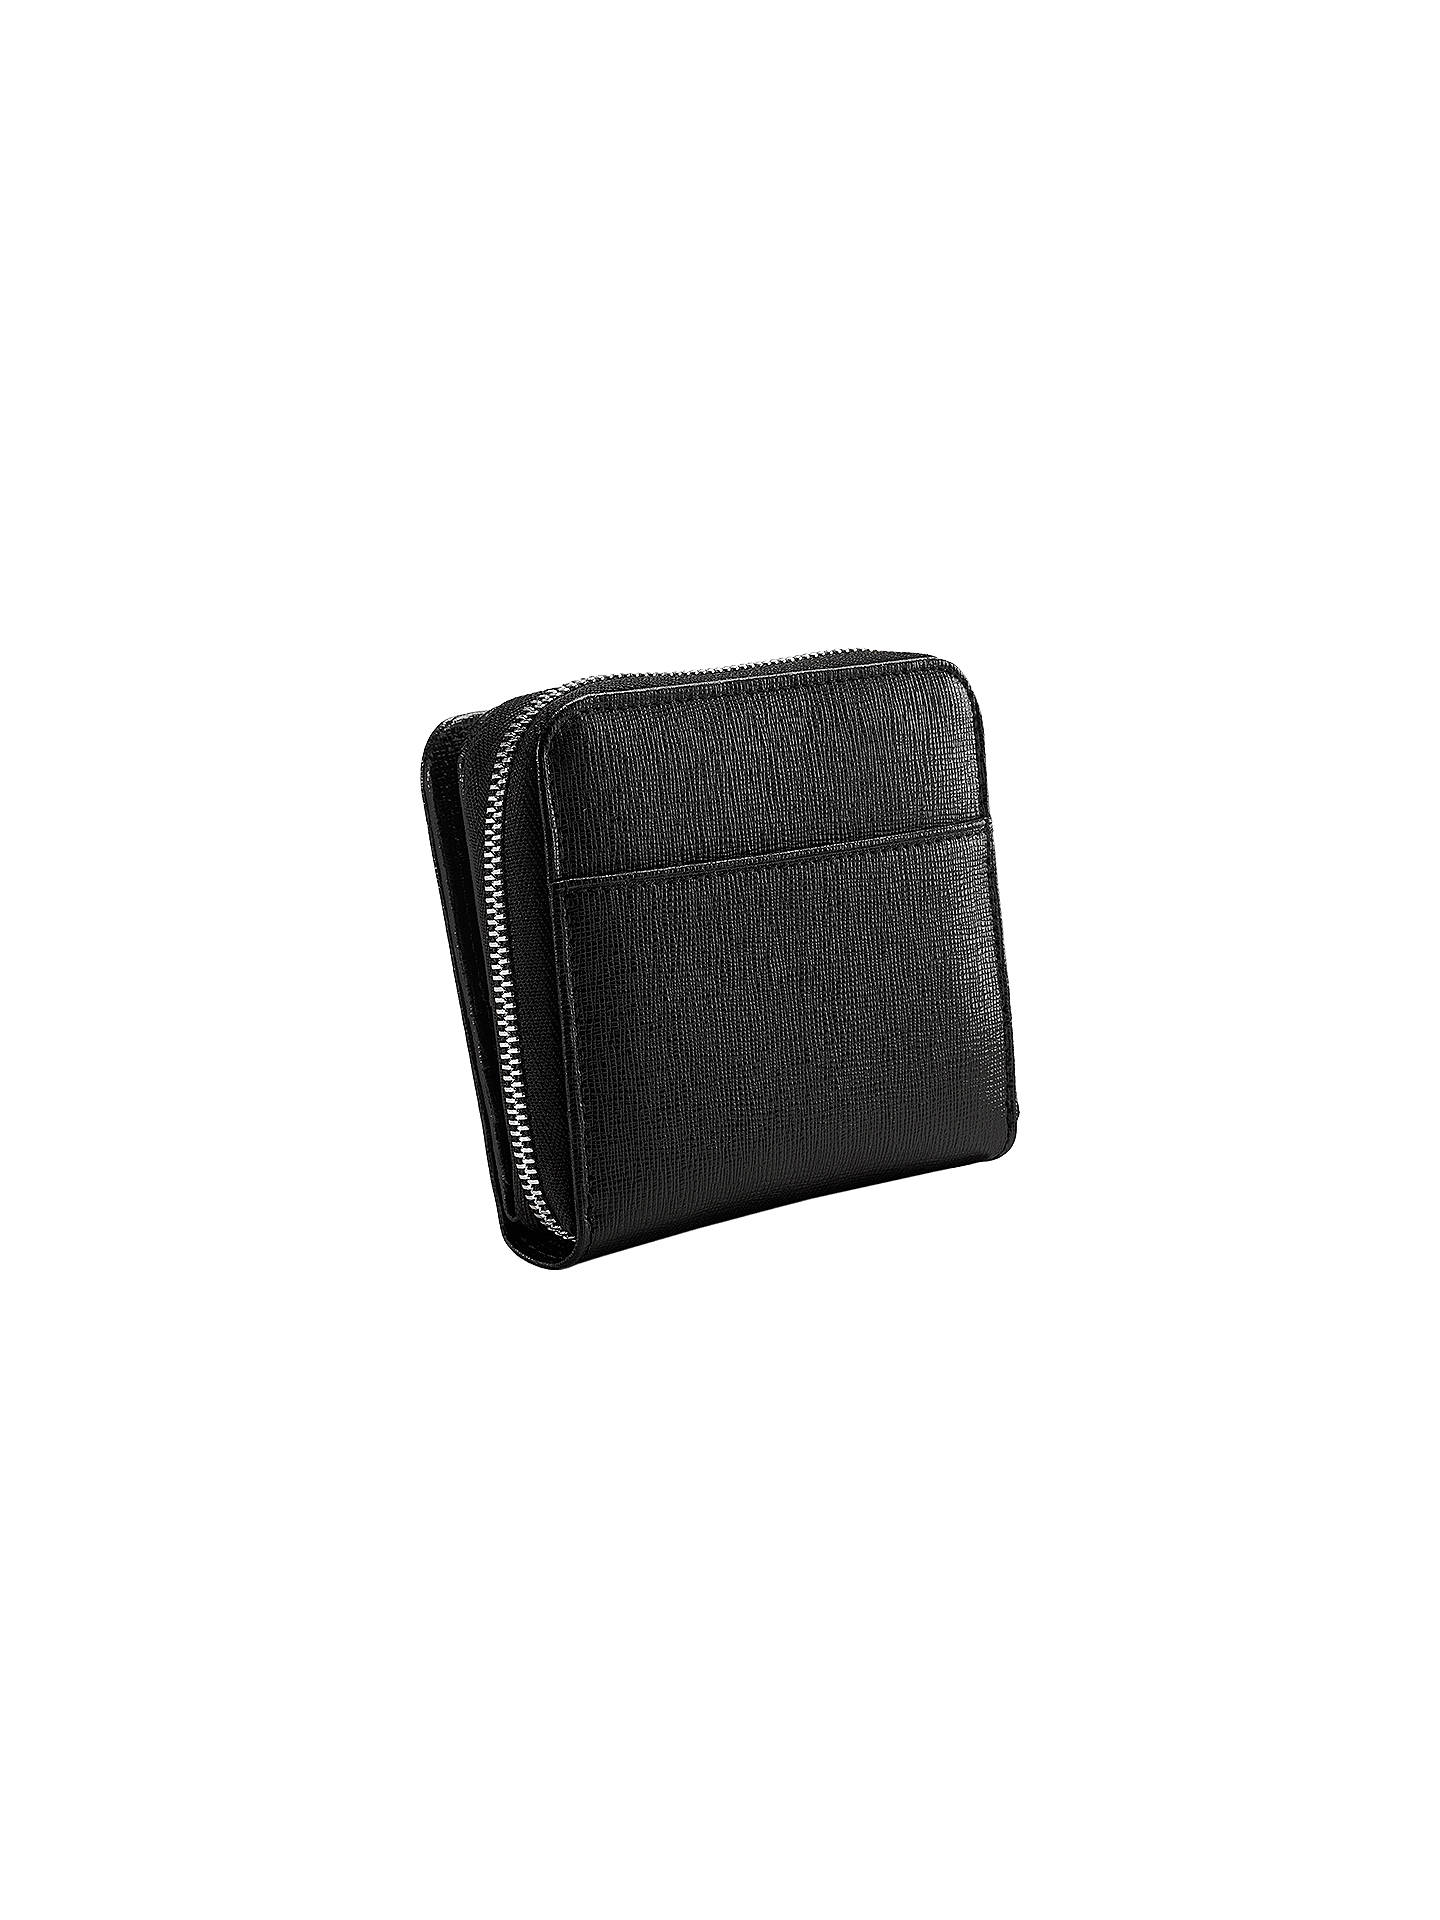 BuyAspinal of London Leather Continental Small Clutch Purse, Black Online at johnlewis.com